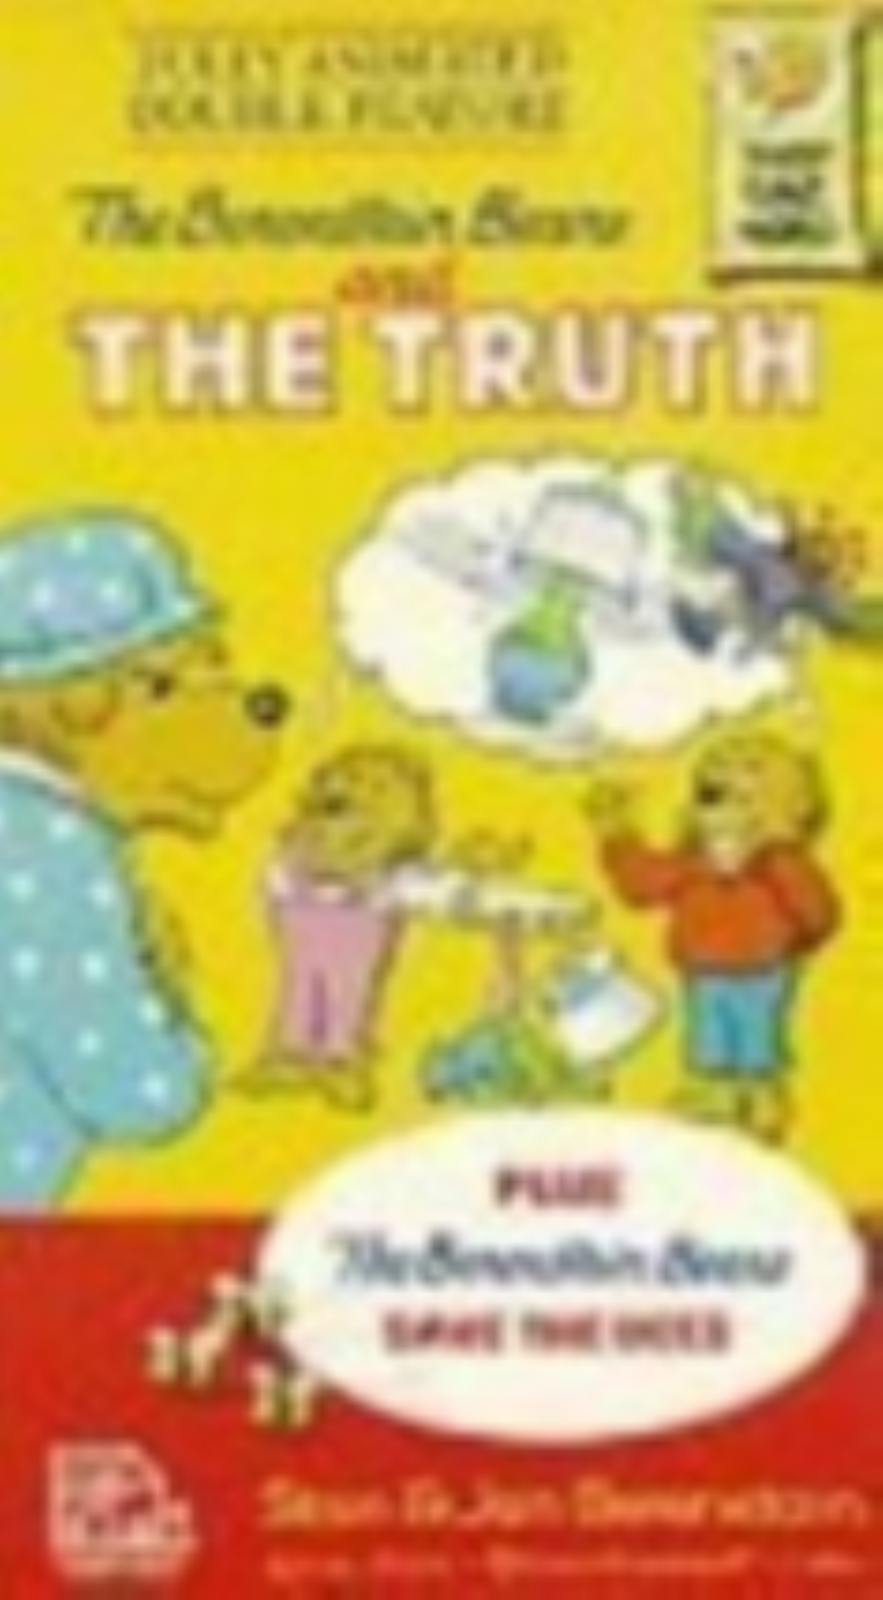 The Berenstain Bears and The Truth Vhs